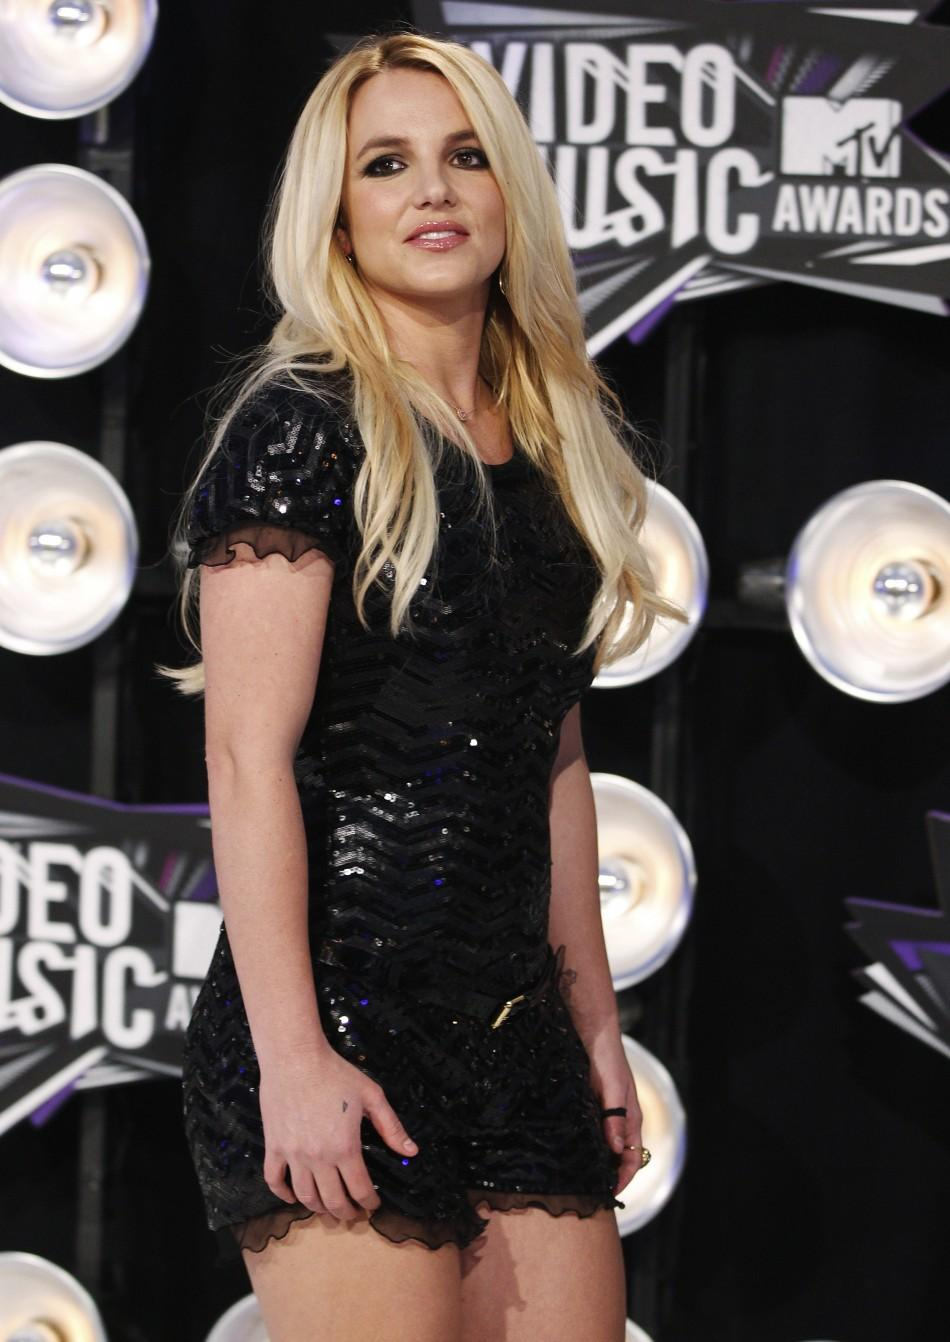 MTV Video Music Awards 2011: Top 10 Red Carpet Fashion